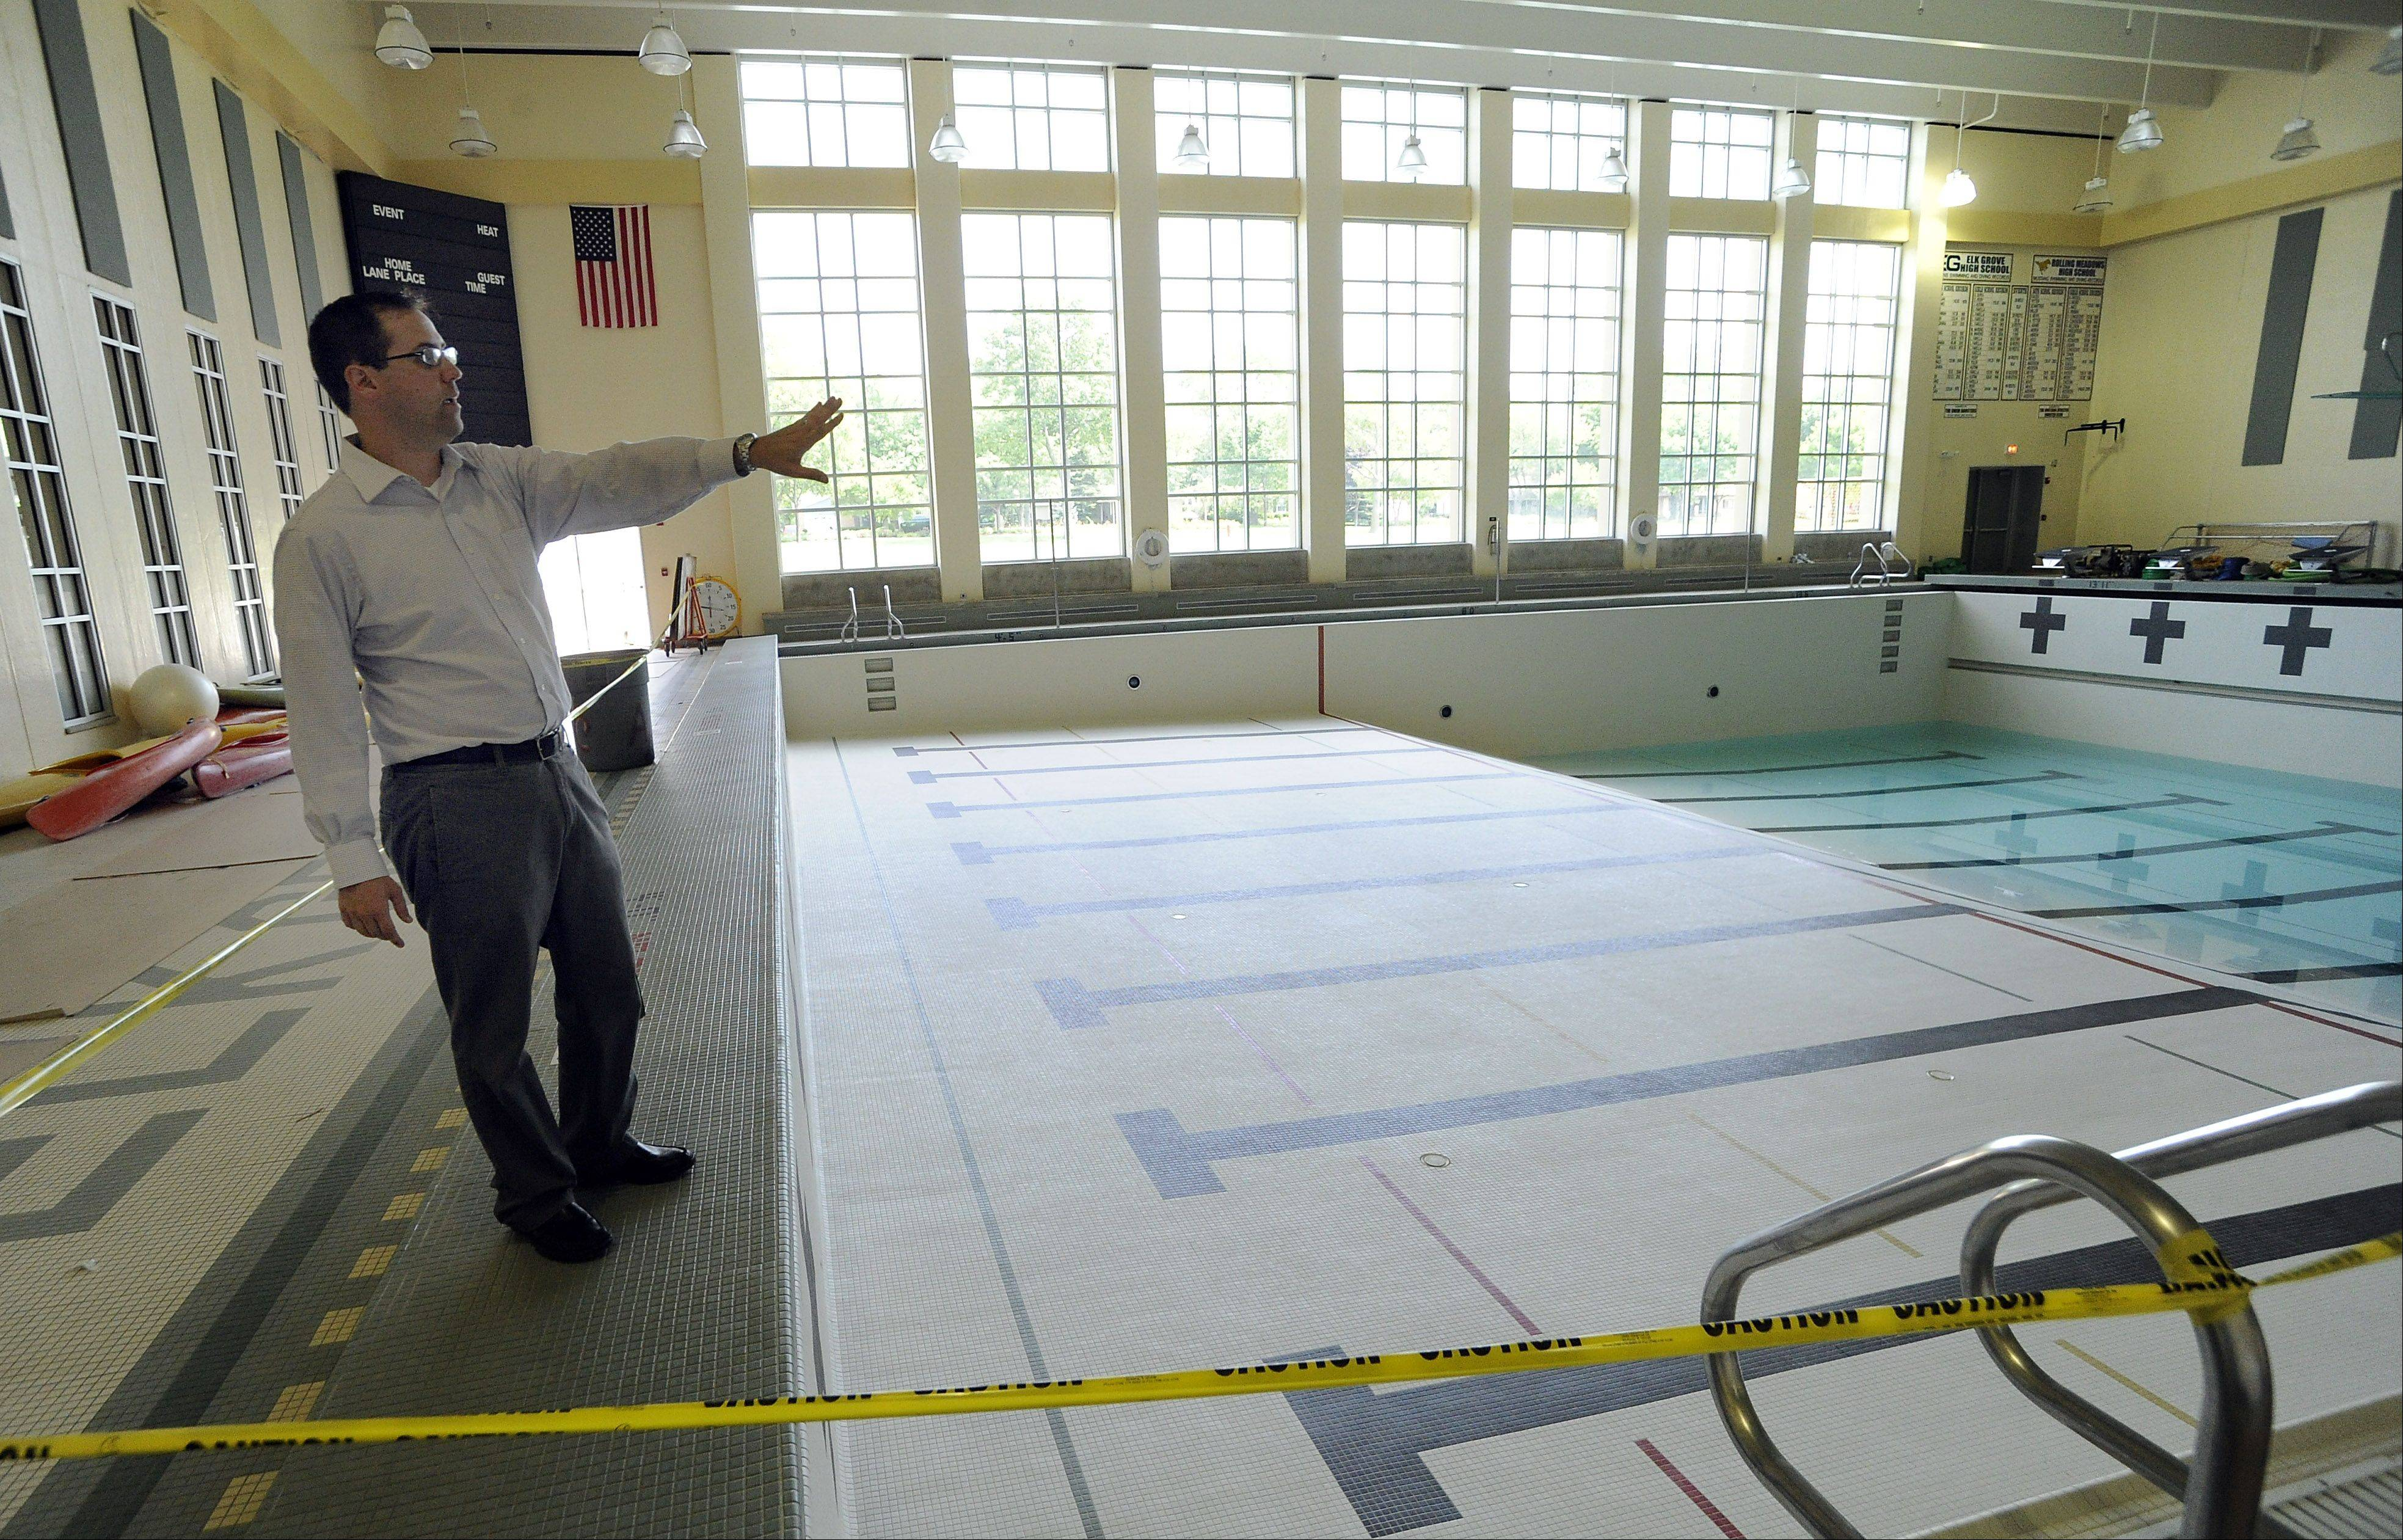 Elk Grove High's pool still closed from flood